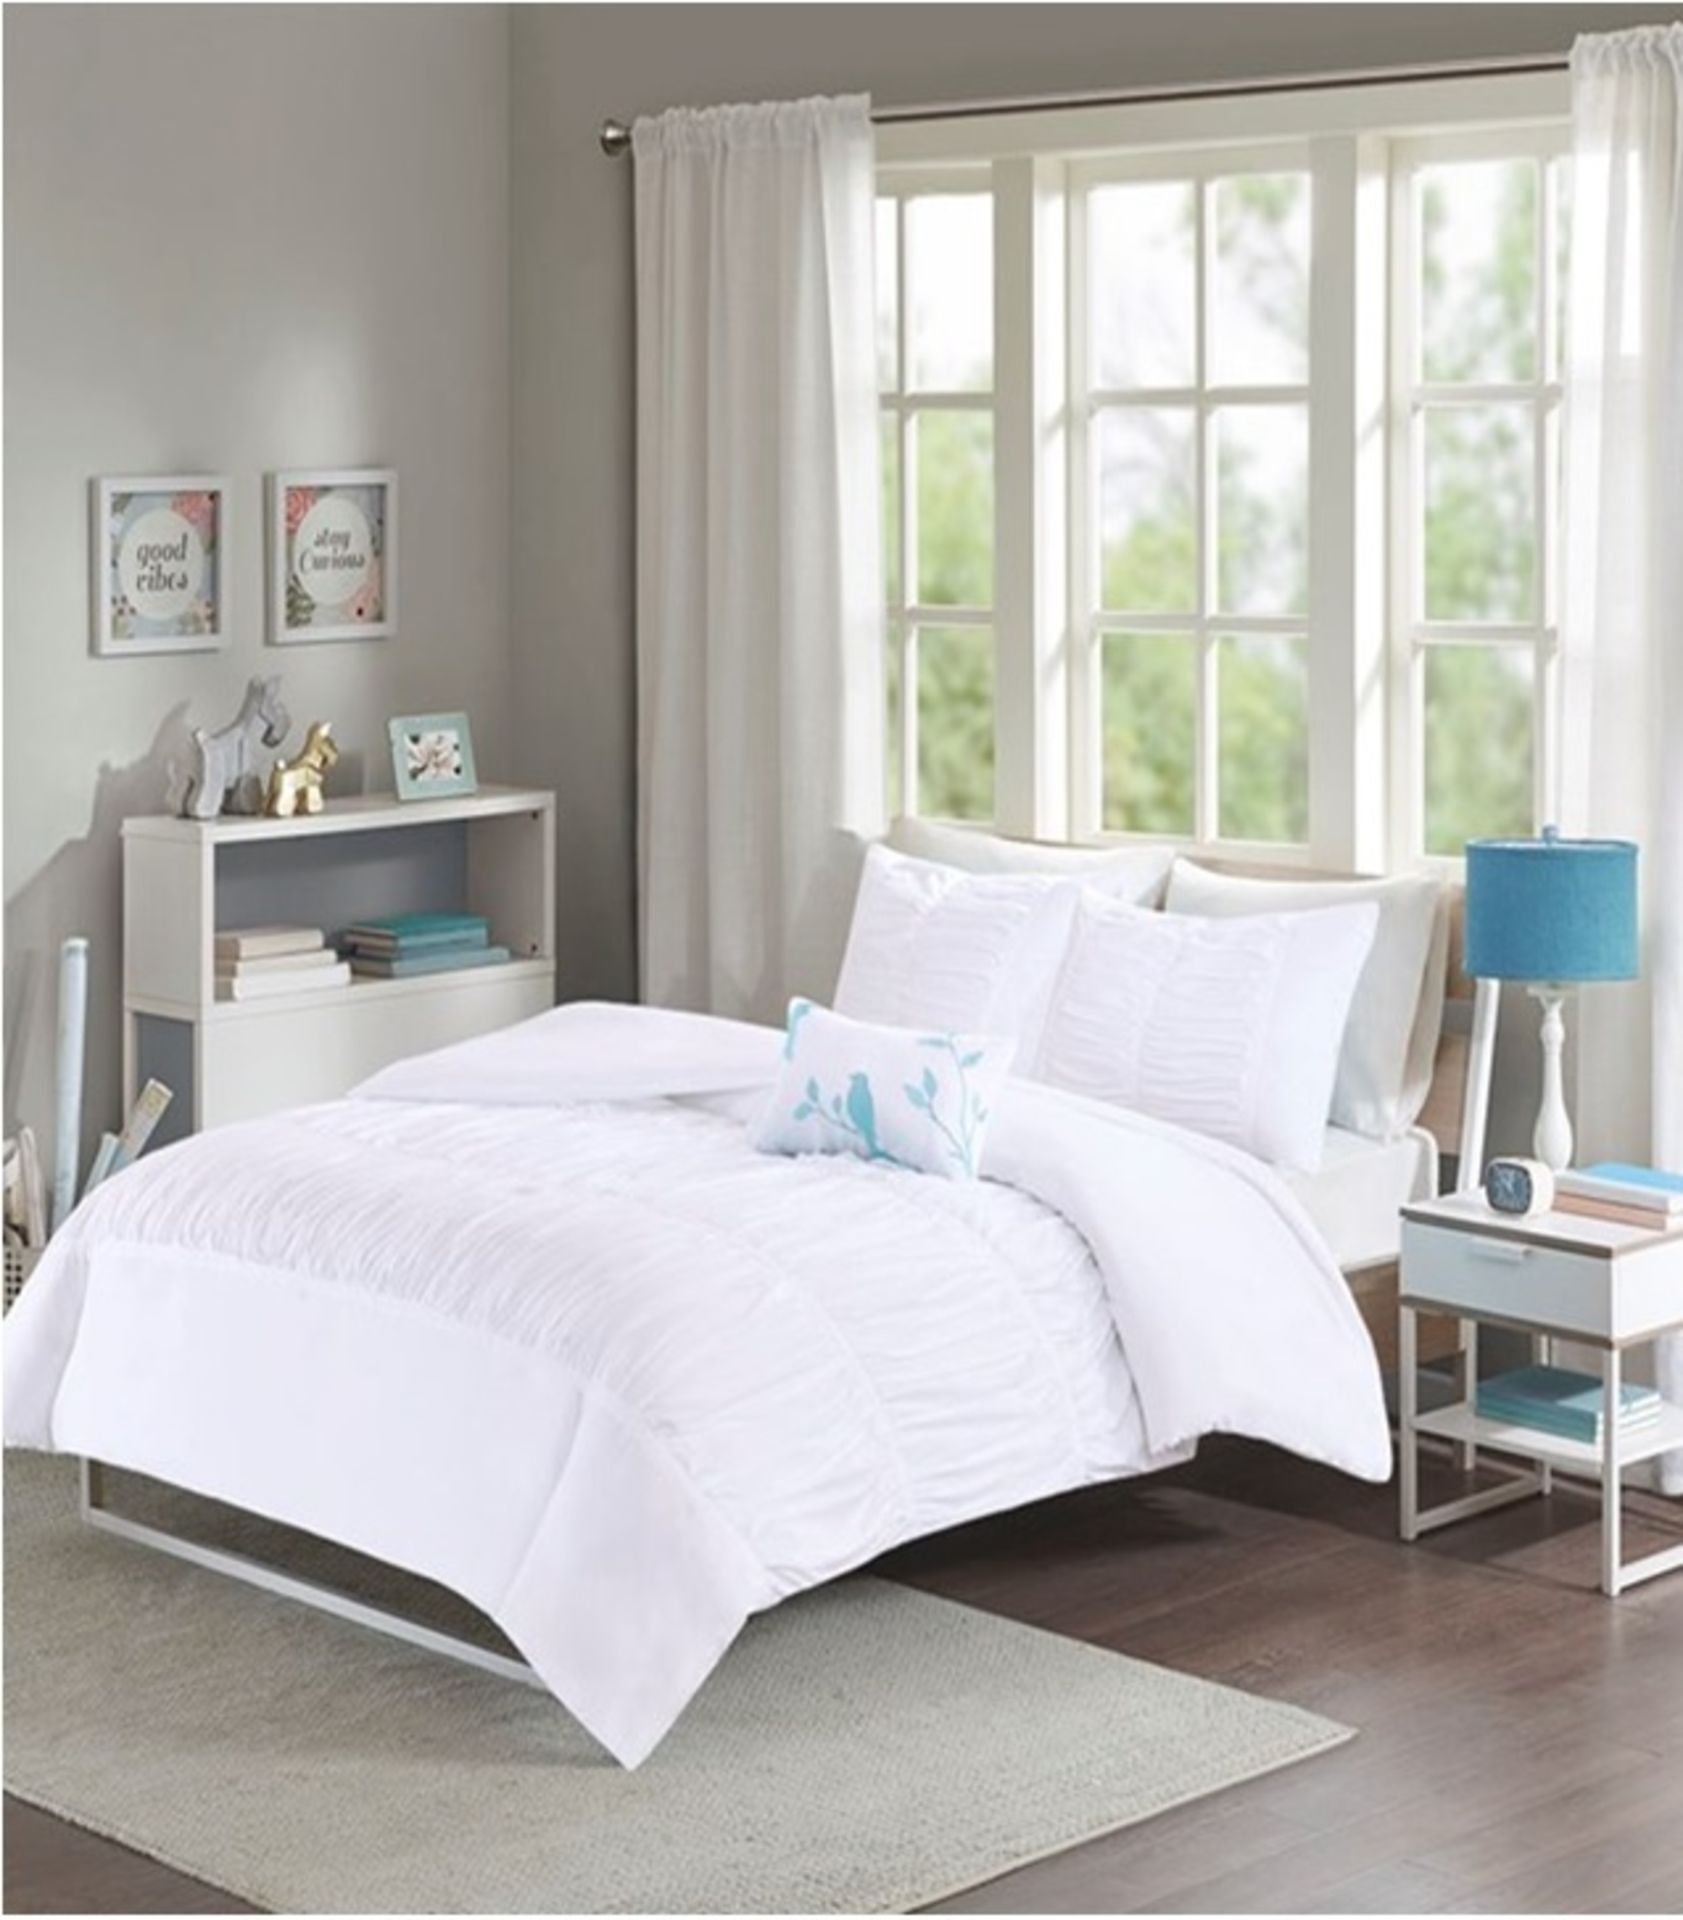 Lot 65 - 1 x Madison Park Mirimar Double Duvet Set White - Product Code MP12-0023UK (Brand New - RRP £39.99)